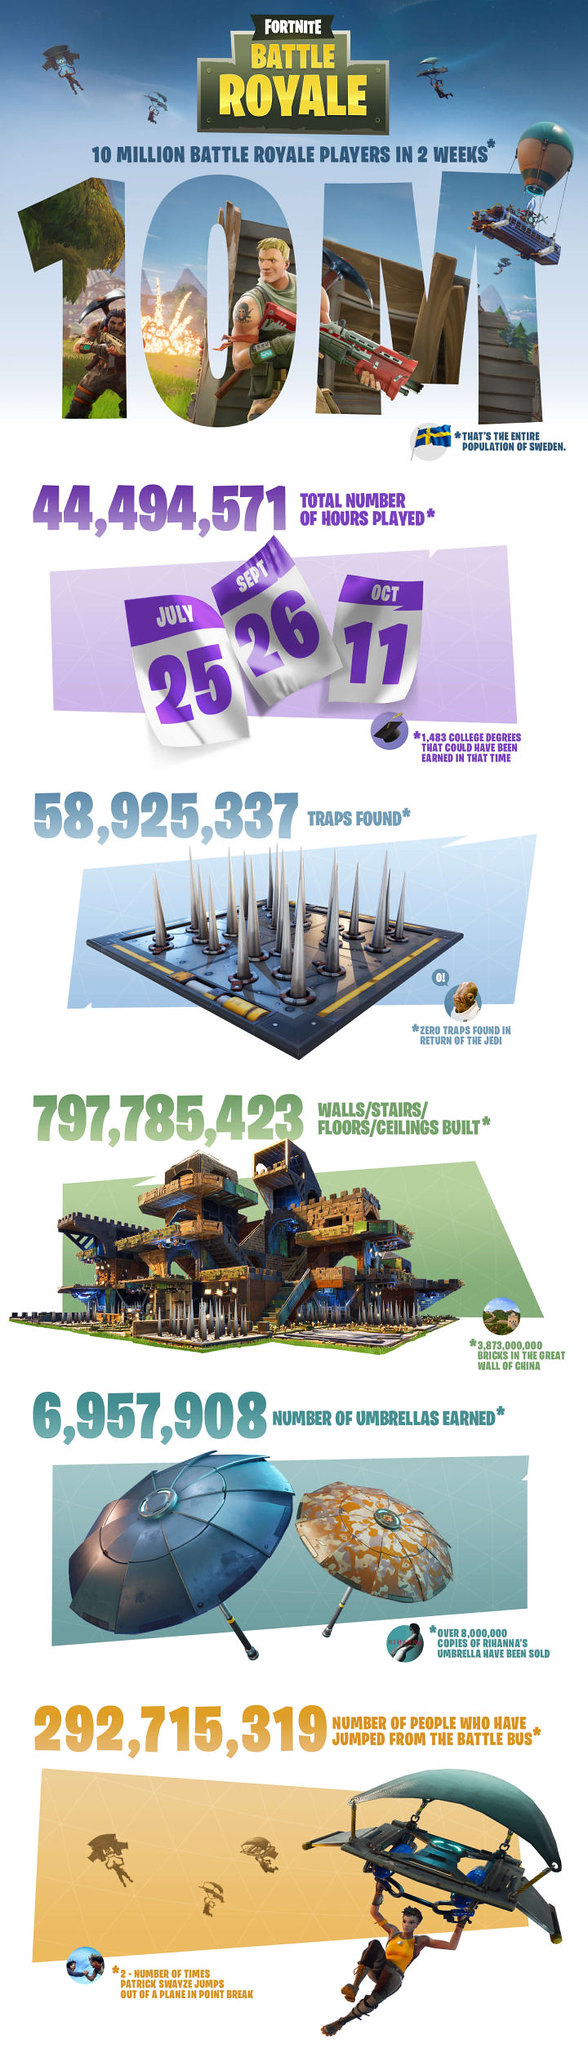 Fortnite Battle Royale Infographic